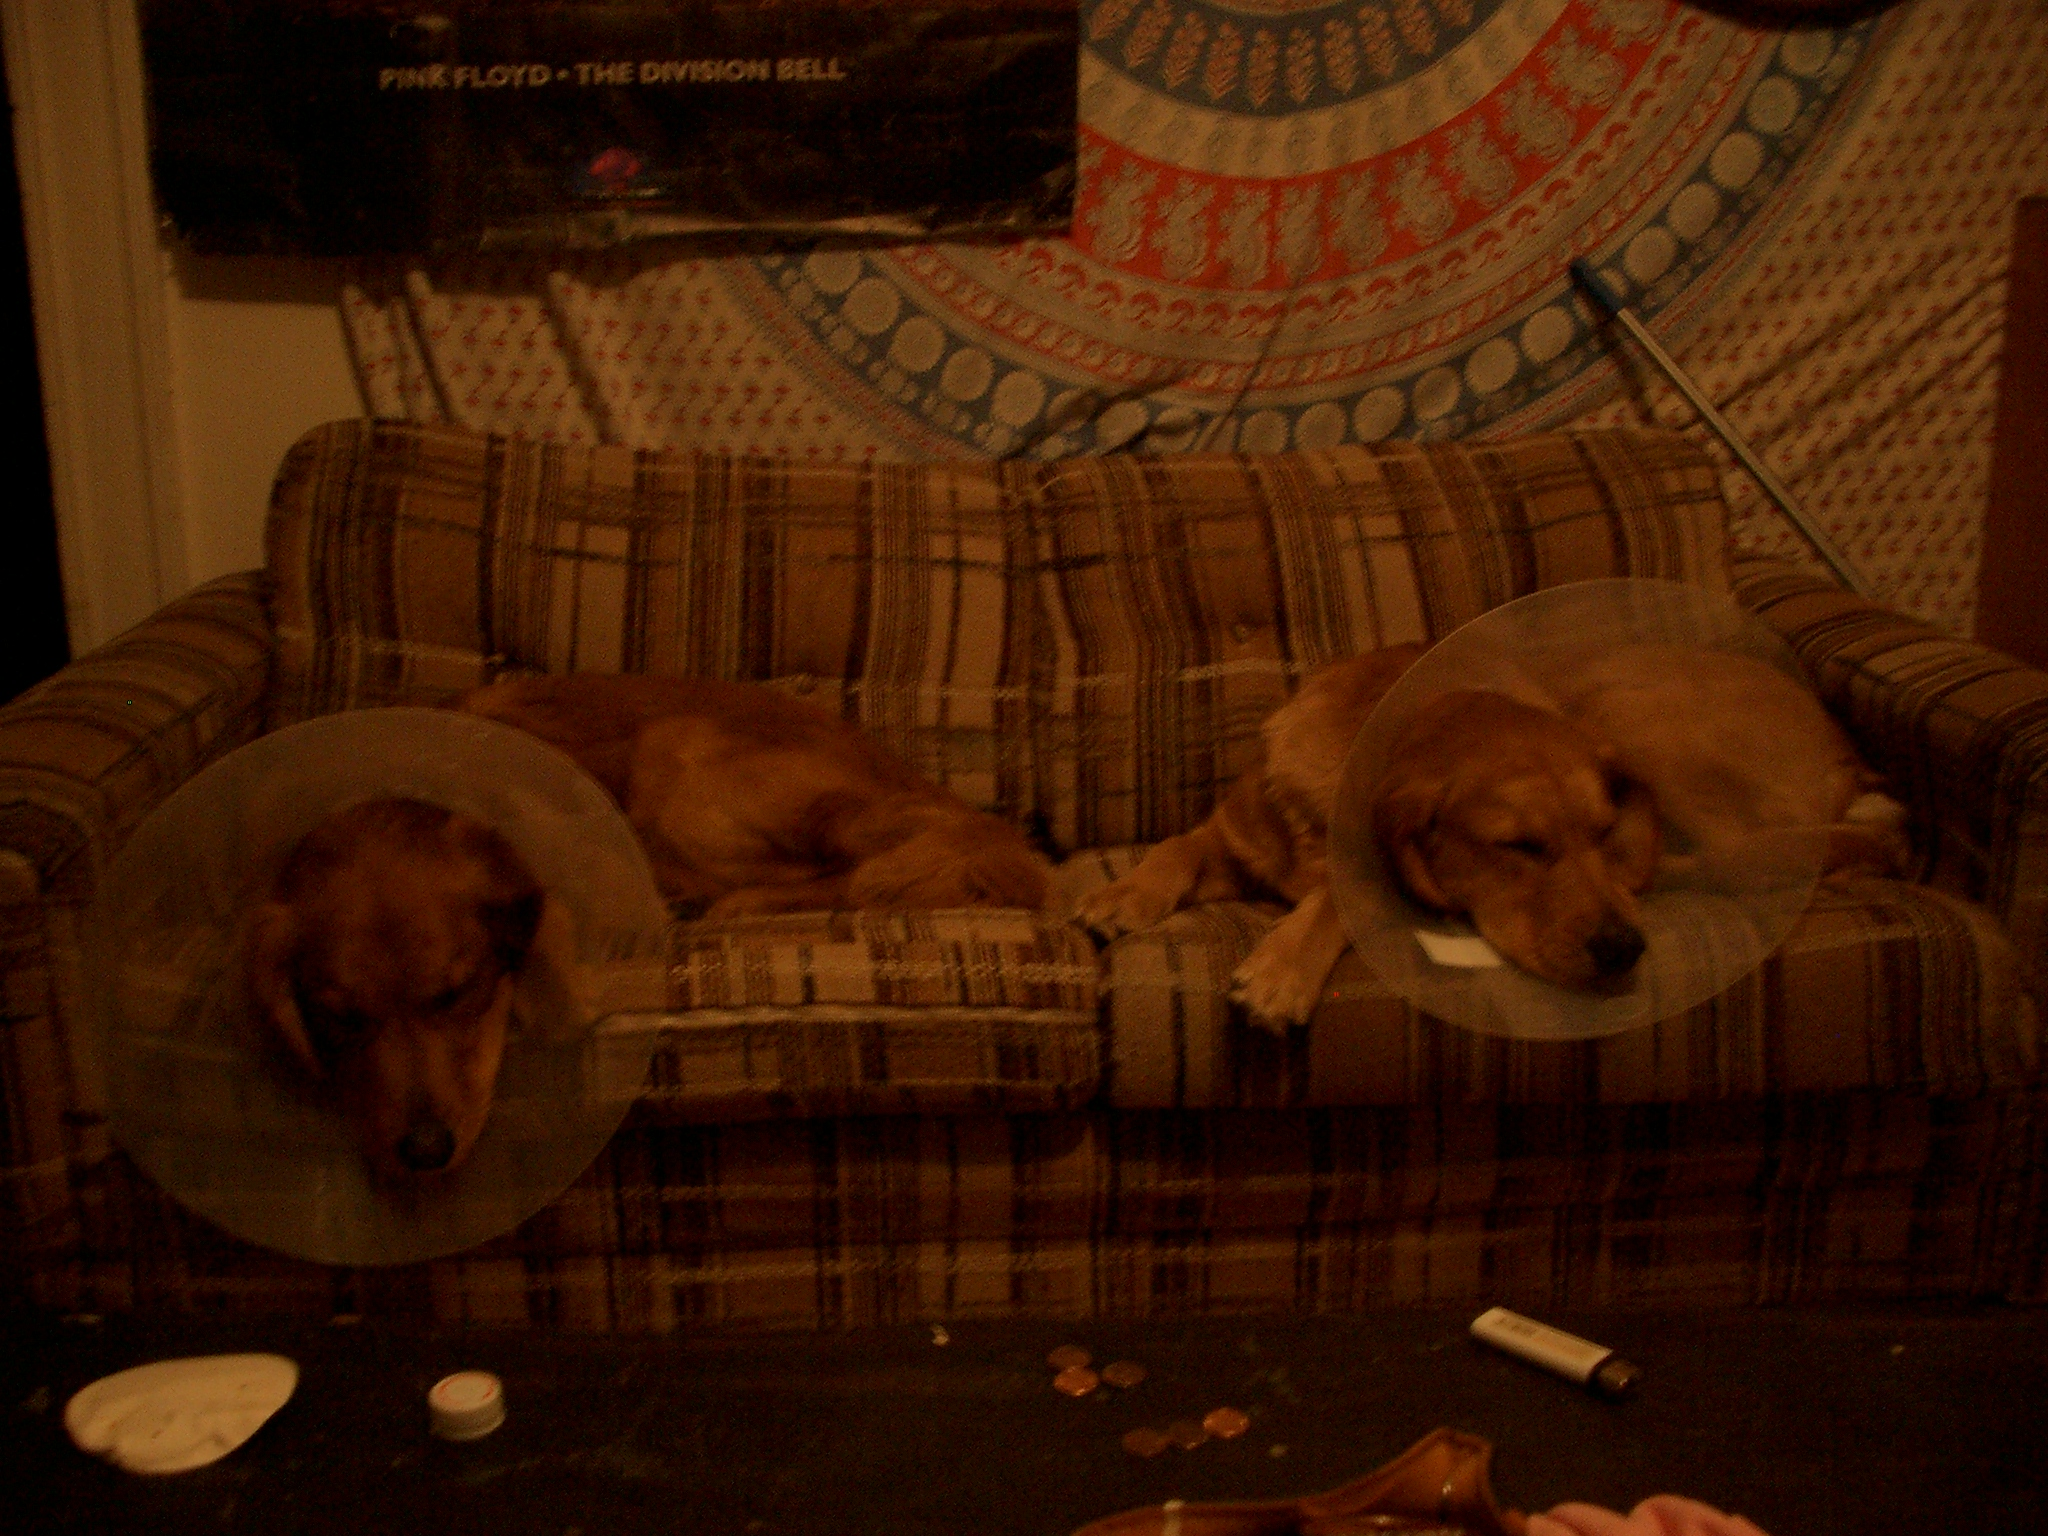 After getting their balls chopped off